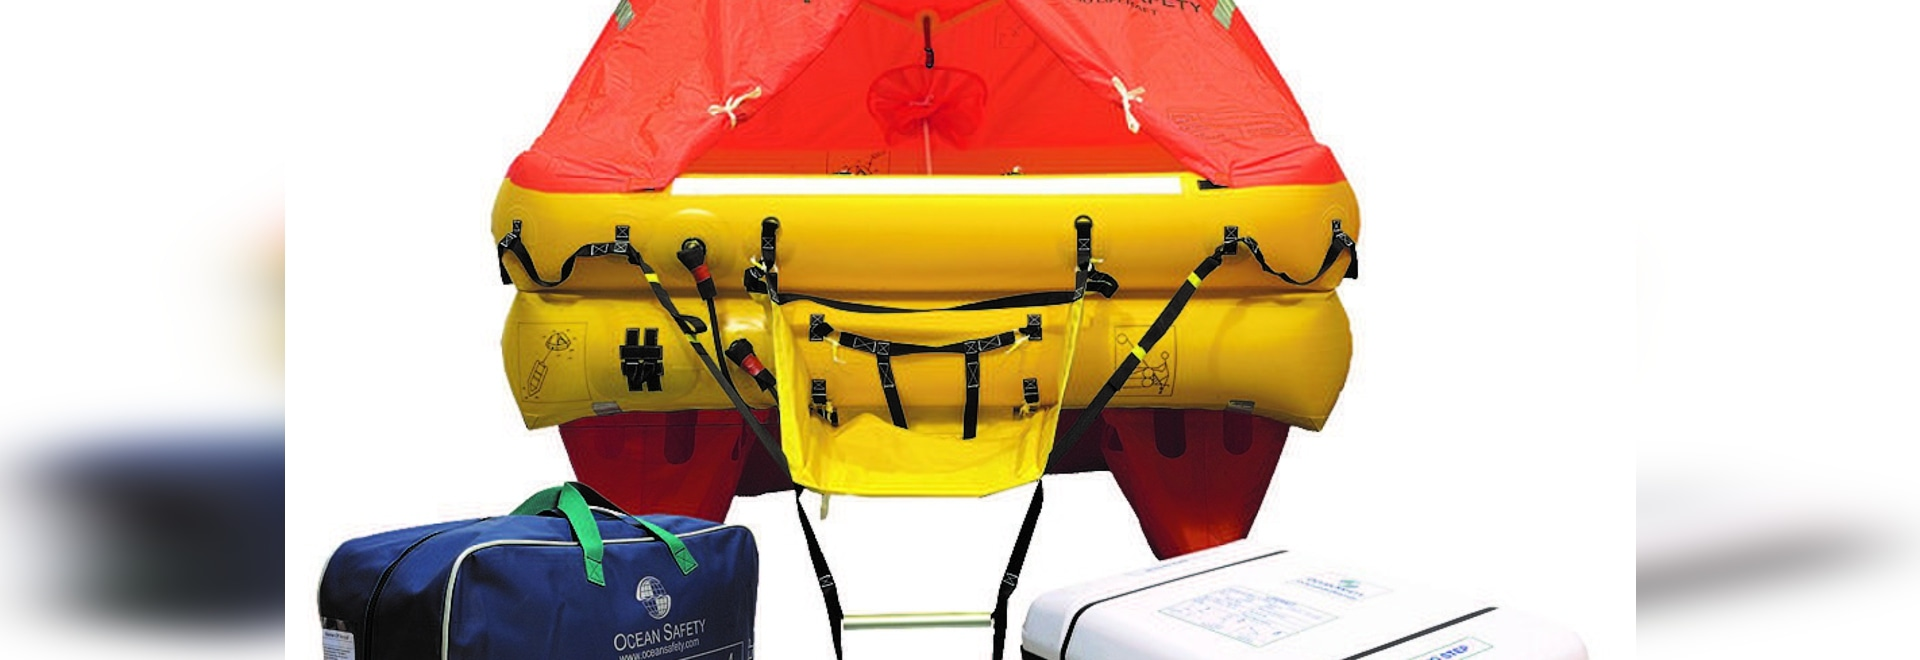 SailForce is to represent Ocean Safety again